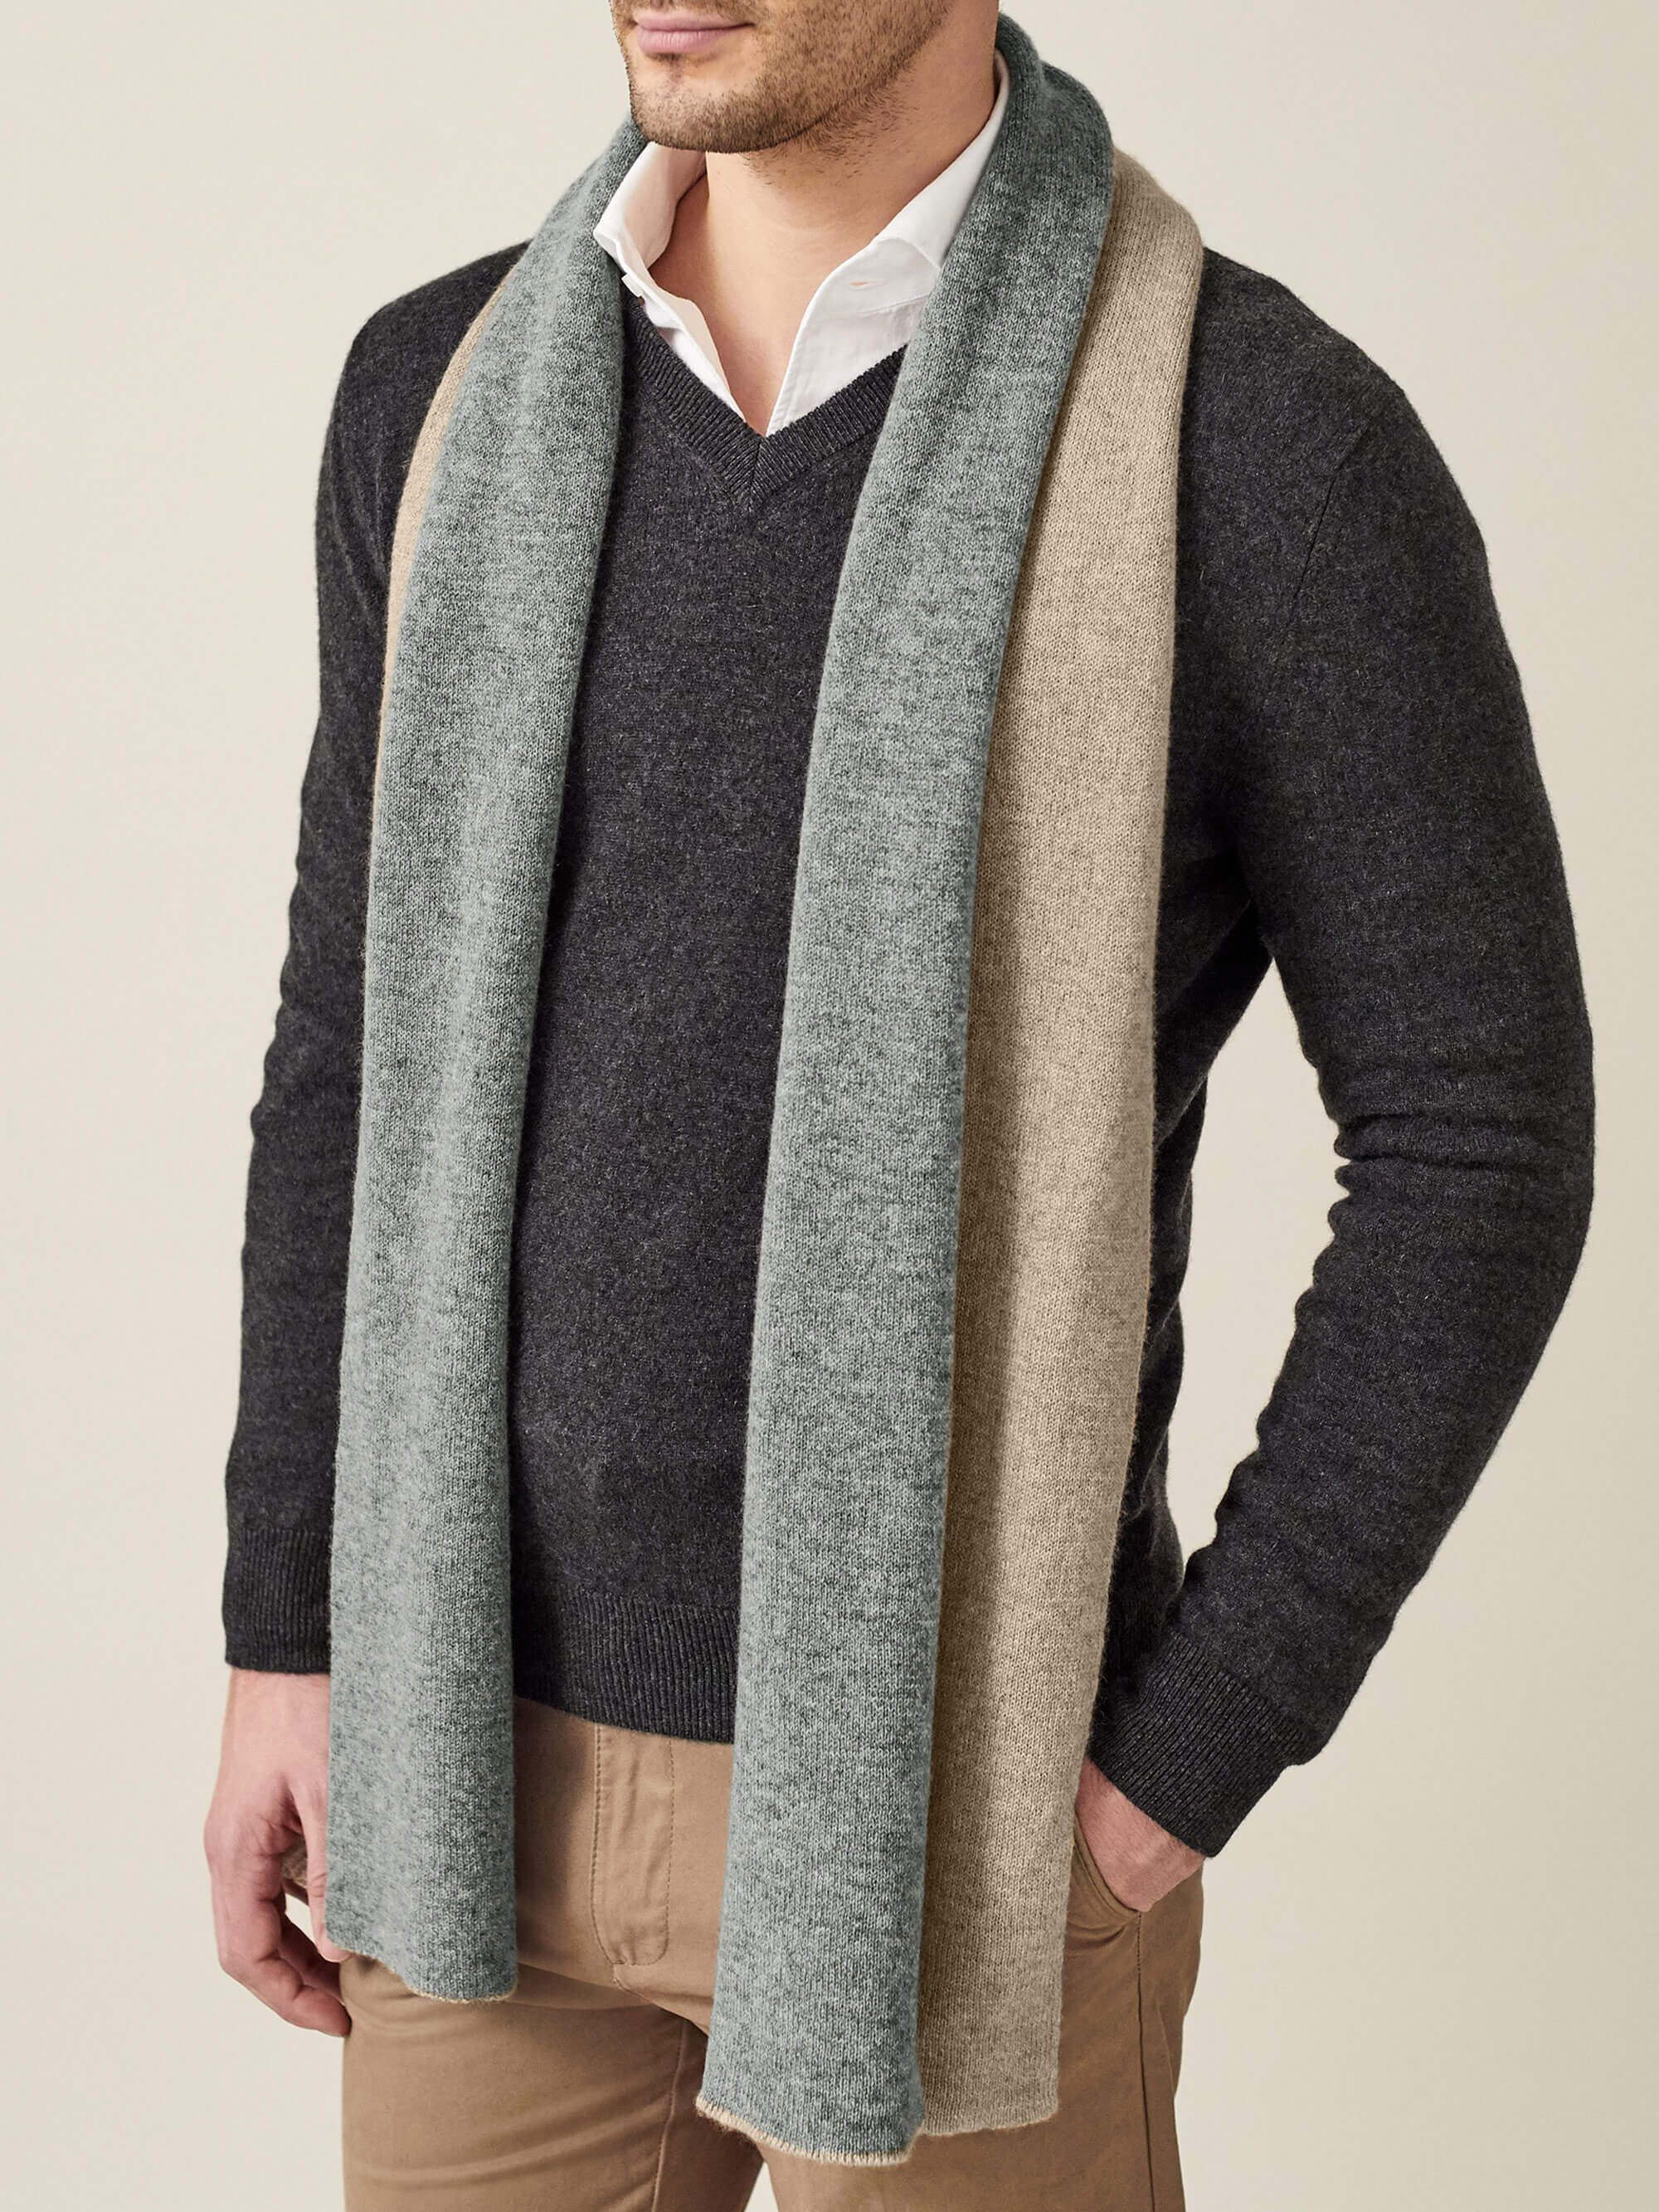 Luca Faloni Double-Faced pure cashmere scarf Made in Italy